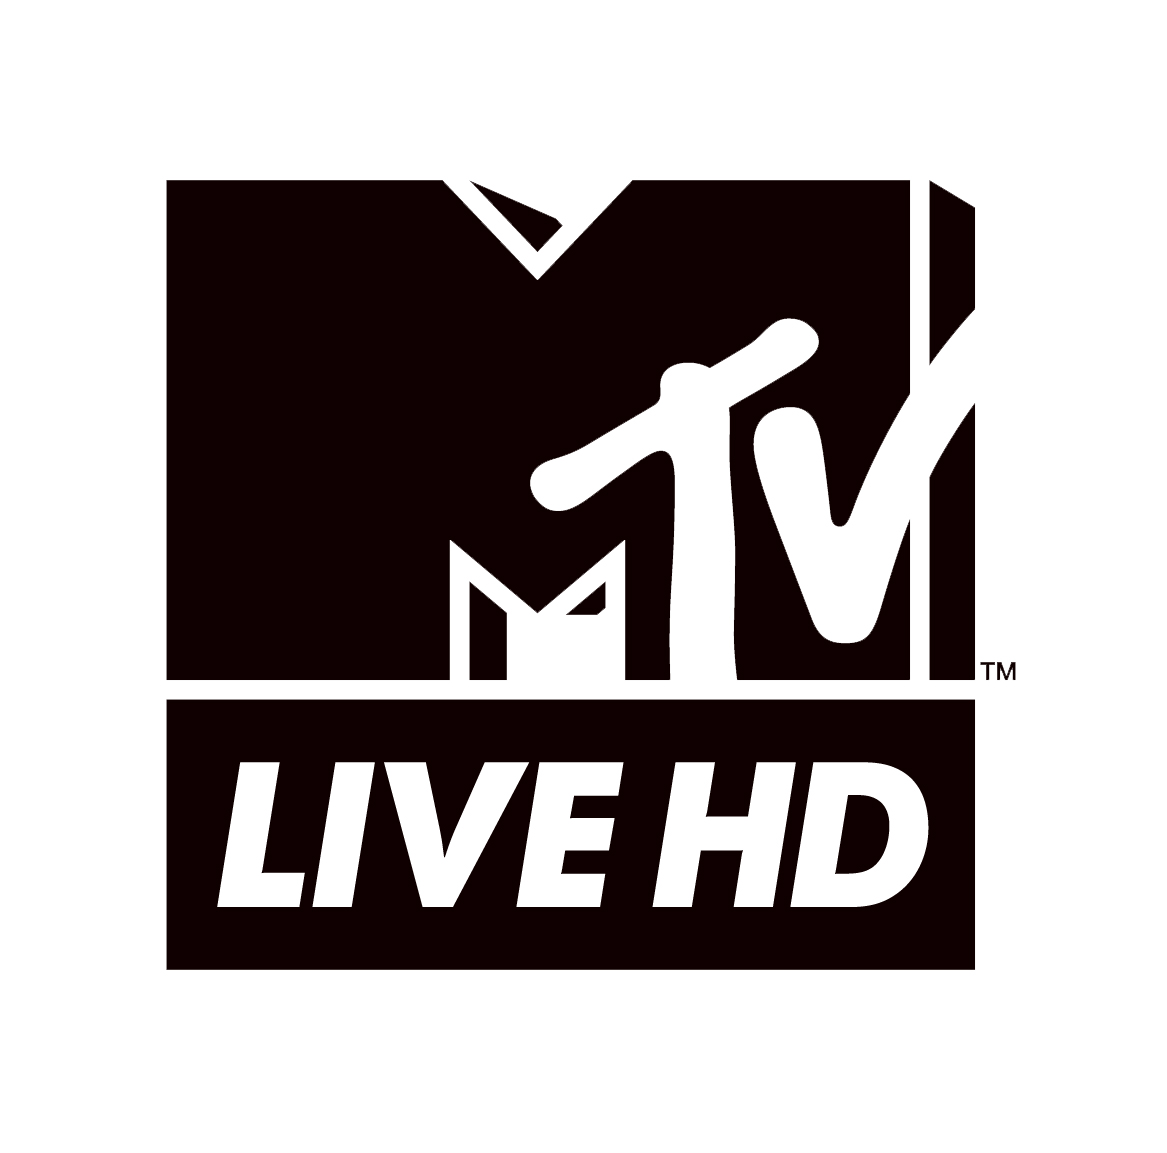 300606 mtv%20live%20hd%20logo 57a28f original 1547106508